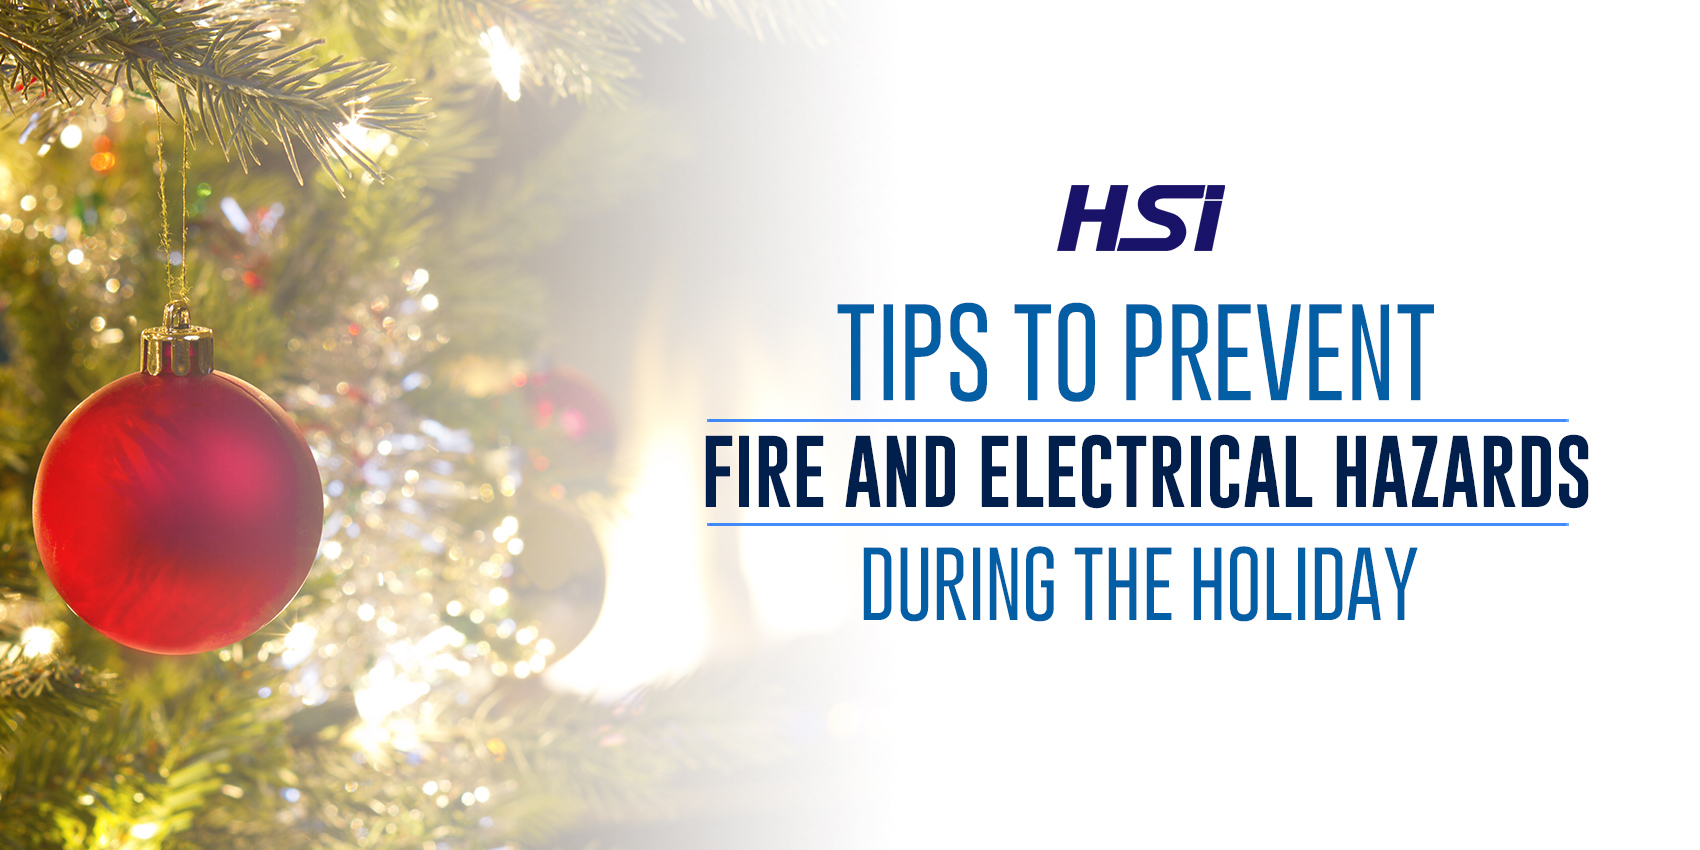 Tips to Prevent Fire and Electrical Hazards During the Holiday